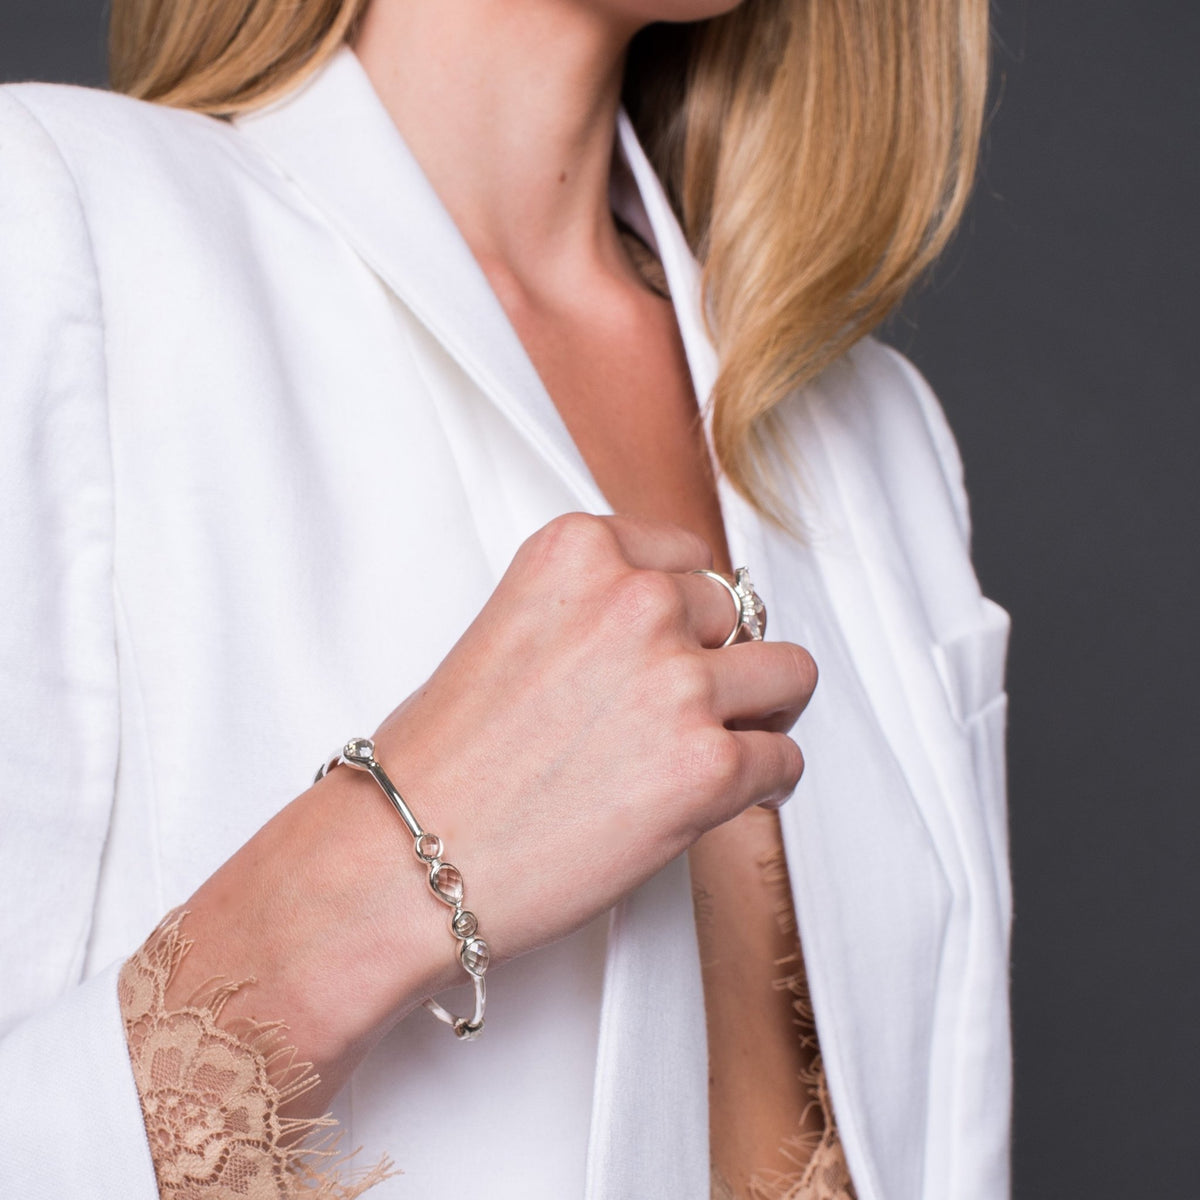 Fearless Oval Bangle - White Topaz & Gold - SO PRETTY CARA COTTER